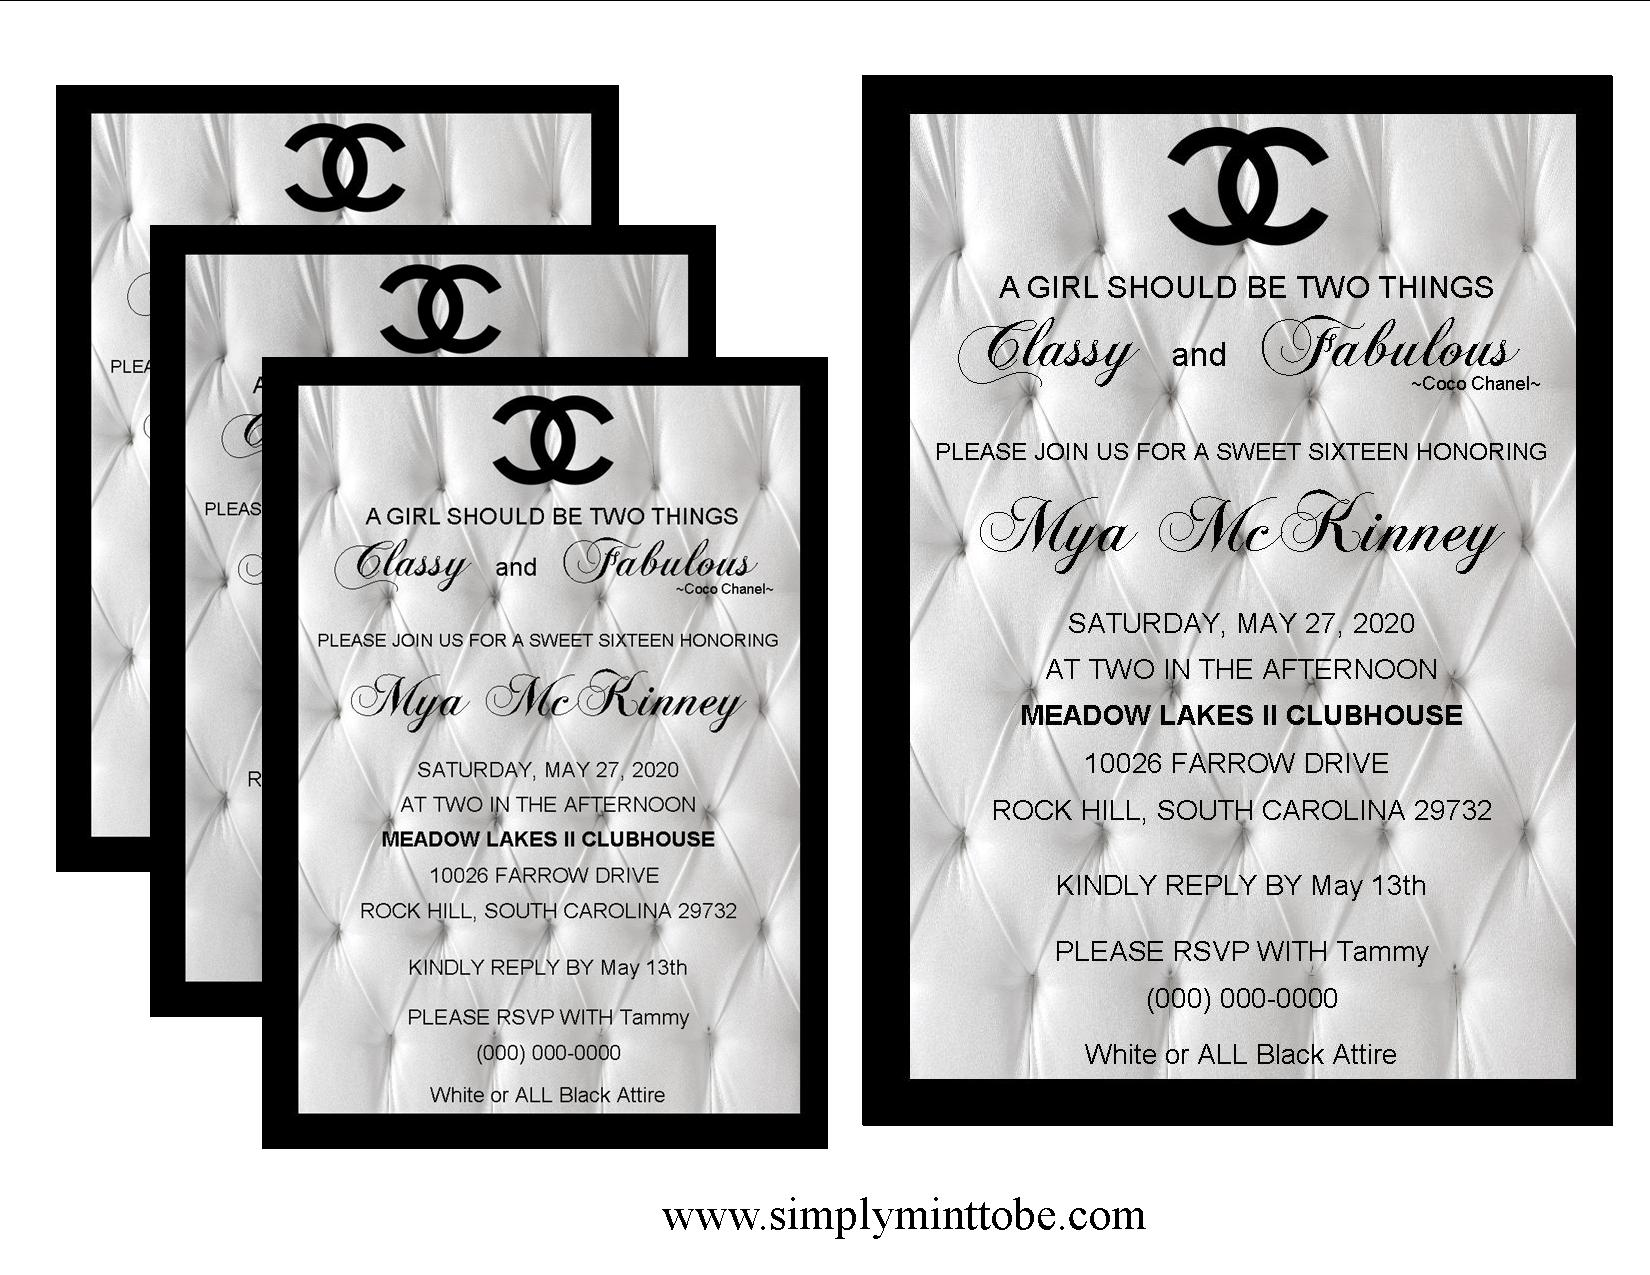 Coco Chanel Classy And Fabulous Inspired Large White Sweet 16